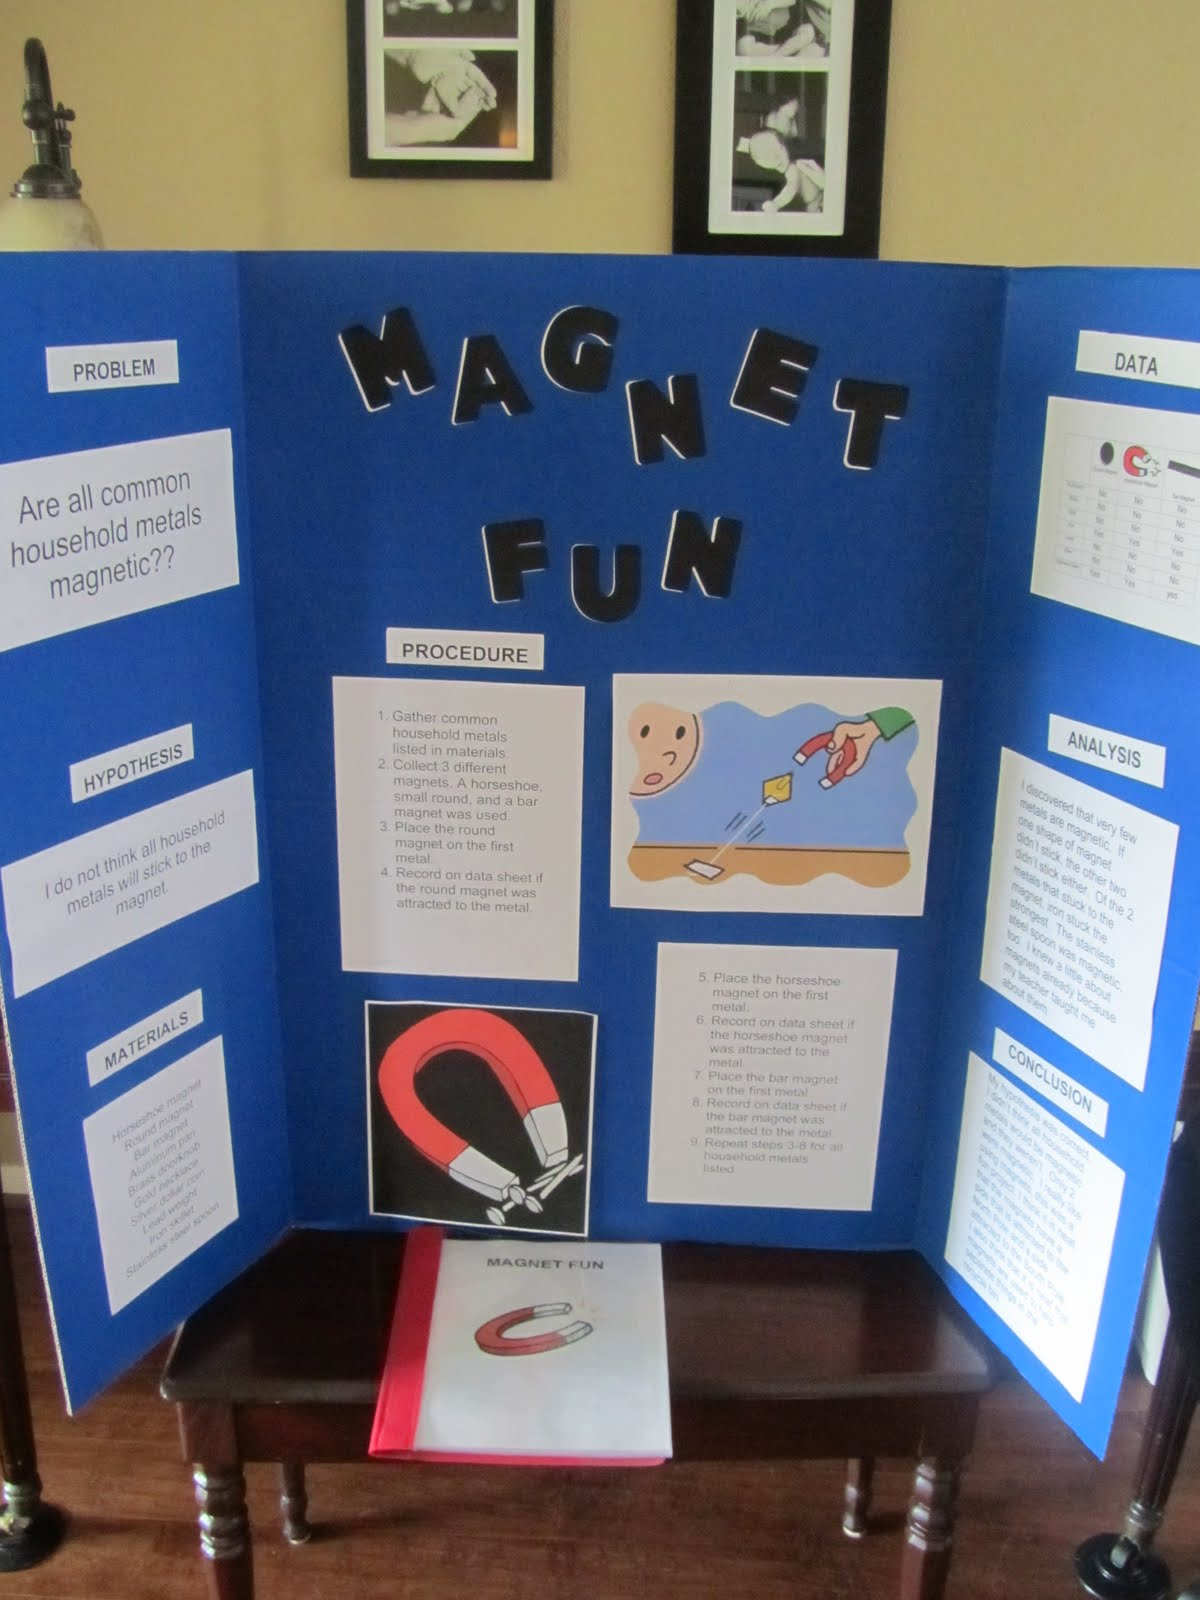 science fair projects with magnets Magnet science fair project ideas designed to create authentic learning experiences as kids design and develop develop their own projects.